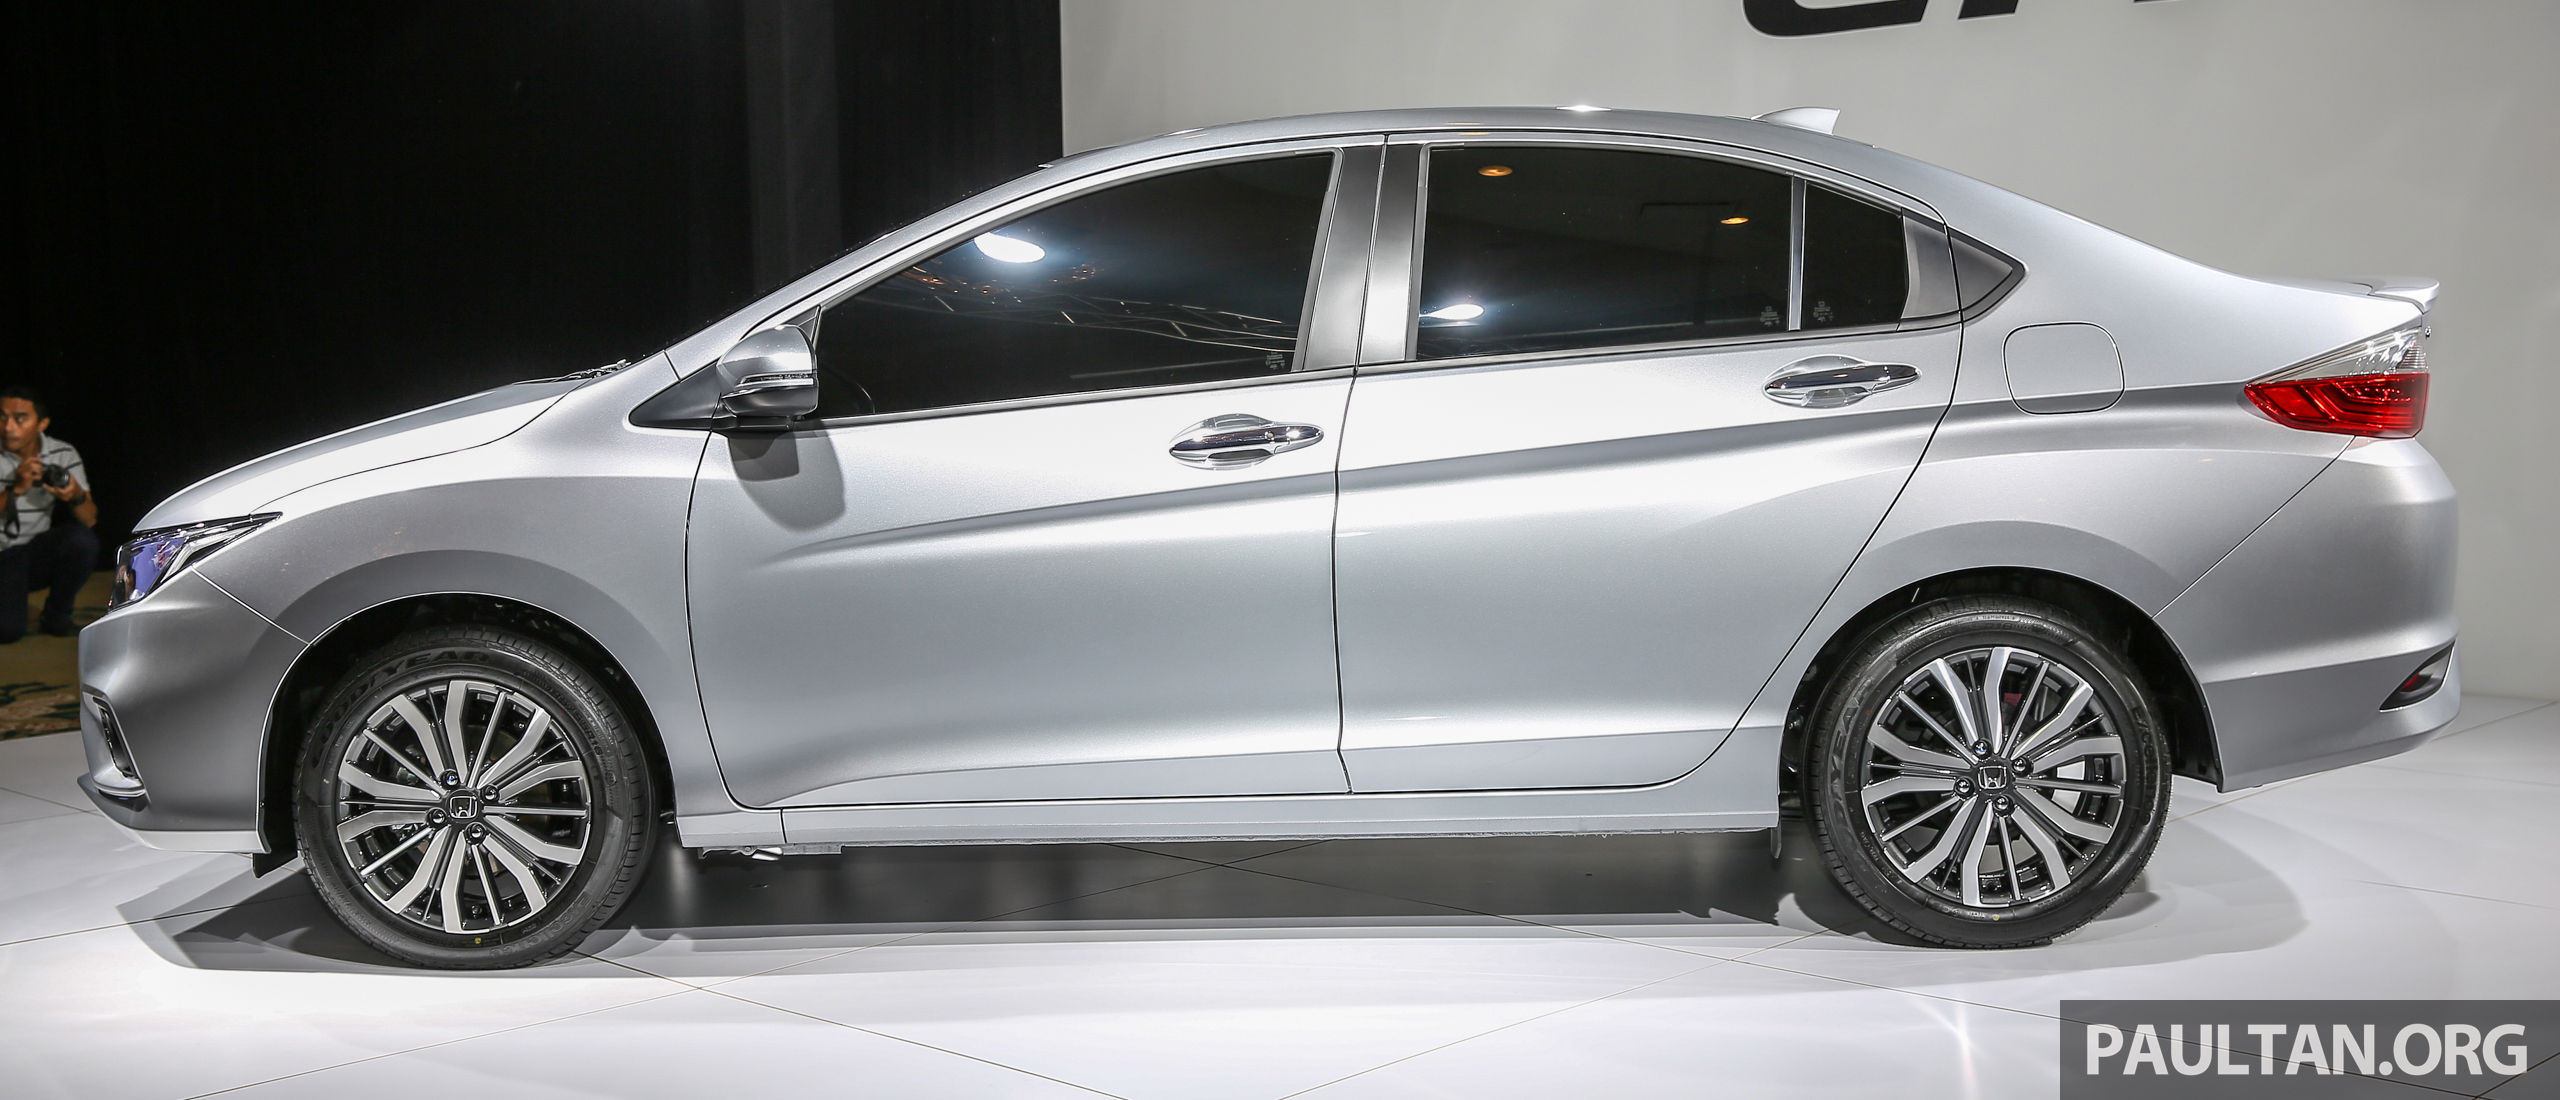 Gallery Honda City Facelift Previewed In Malaysia Paul